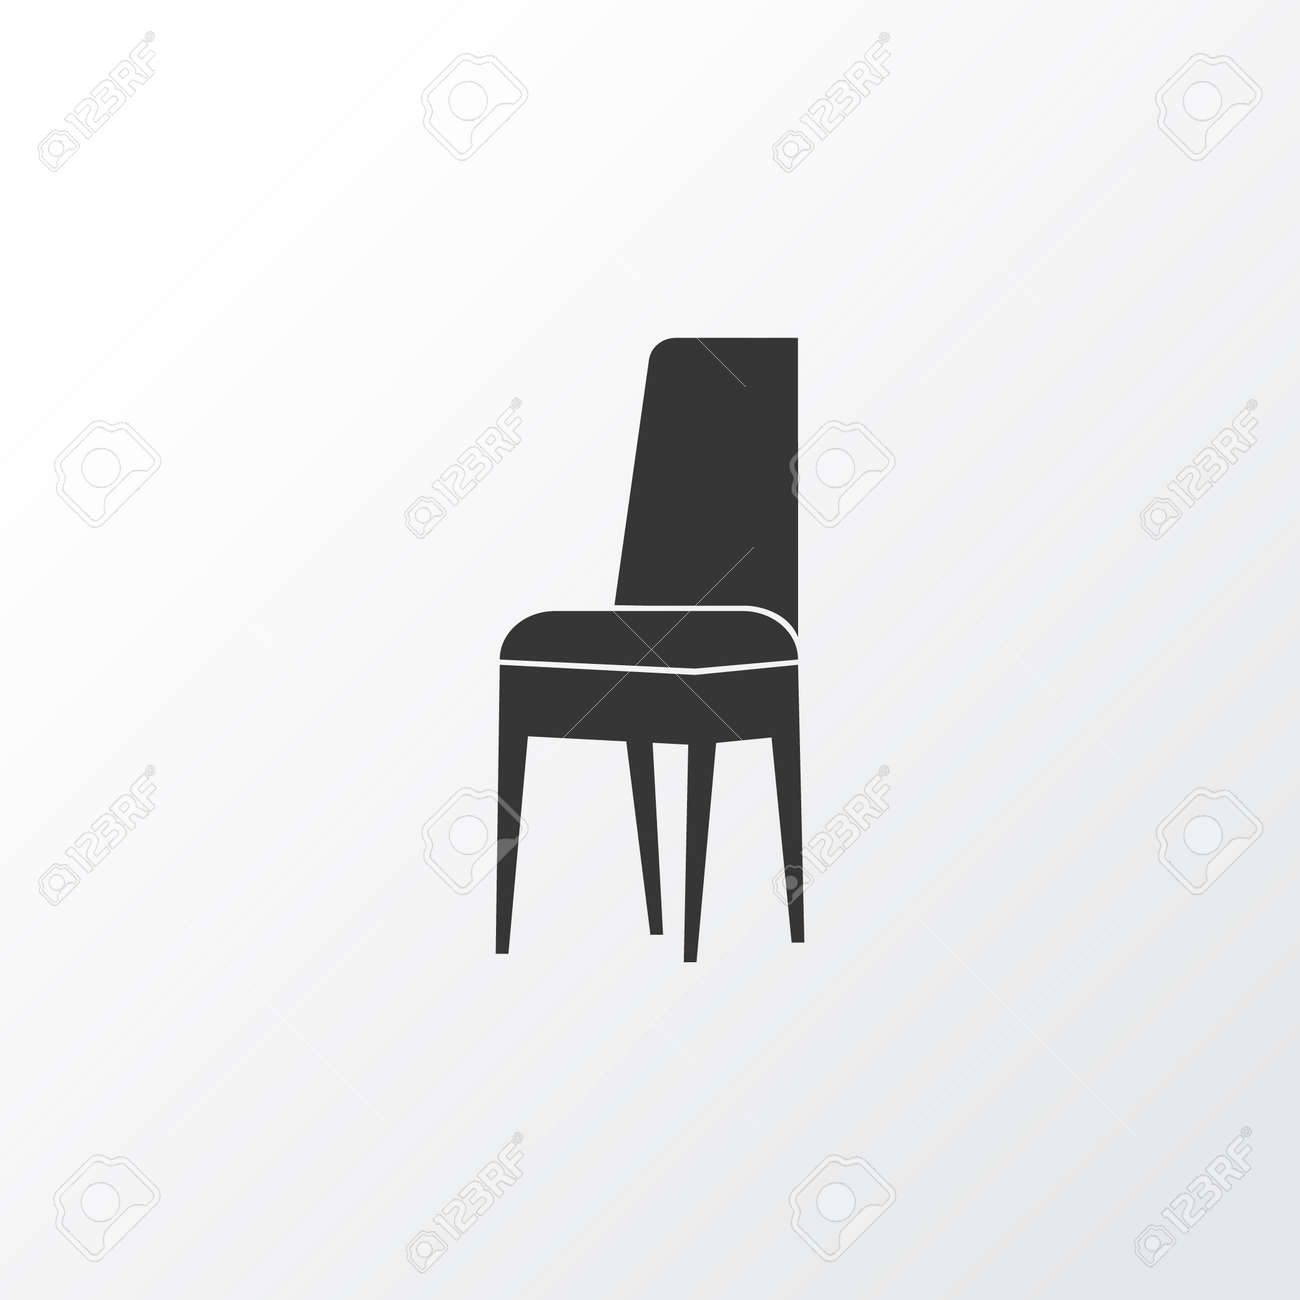 Best Dining Chair Vector